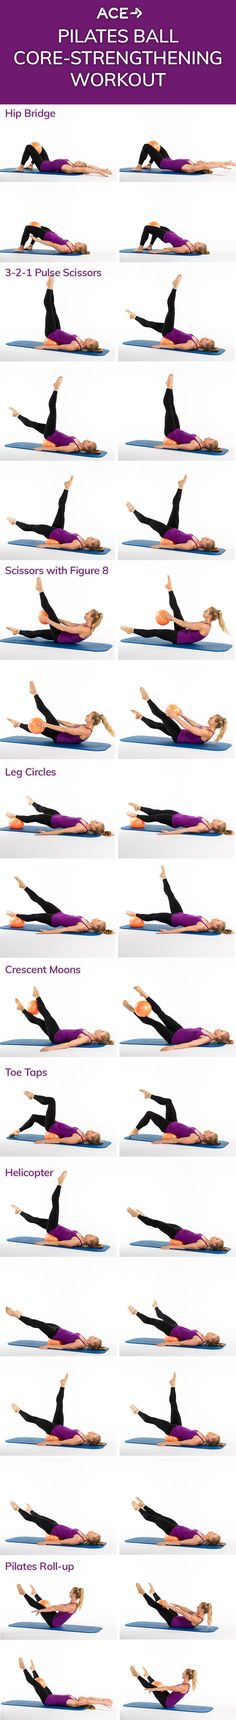 The Pilates Ball Core-Strengthening Workout #pilatesejercicios